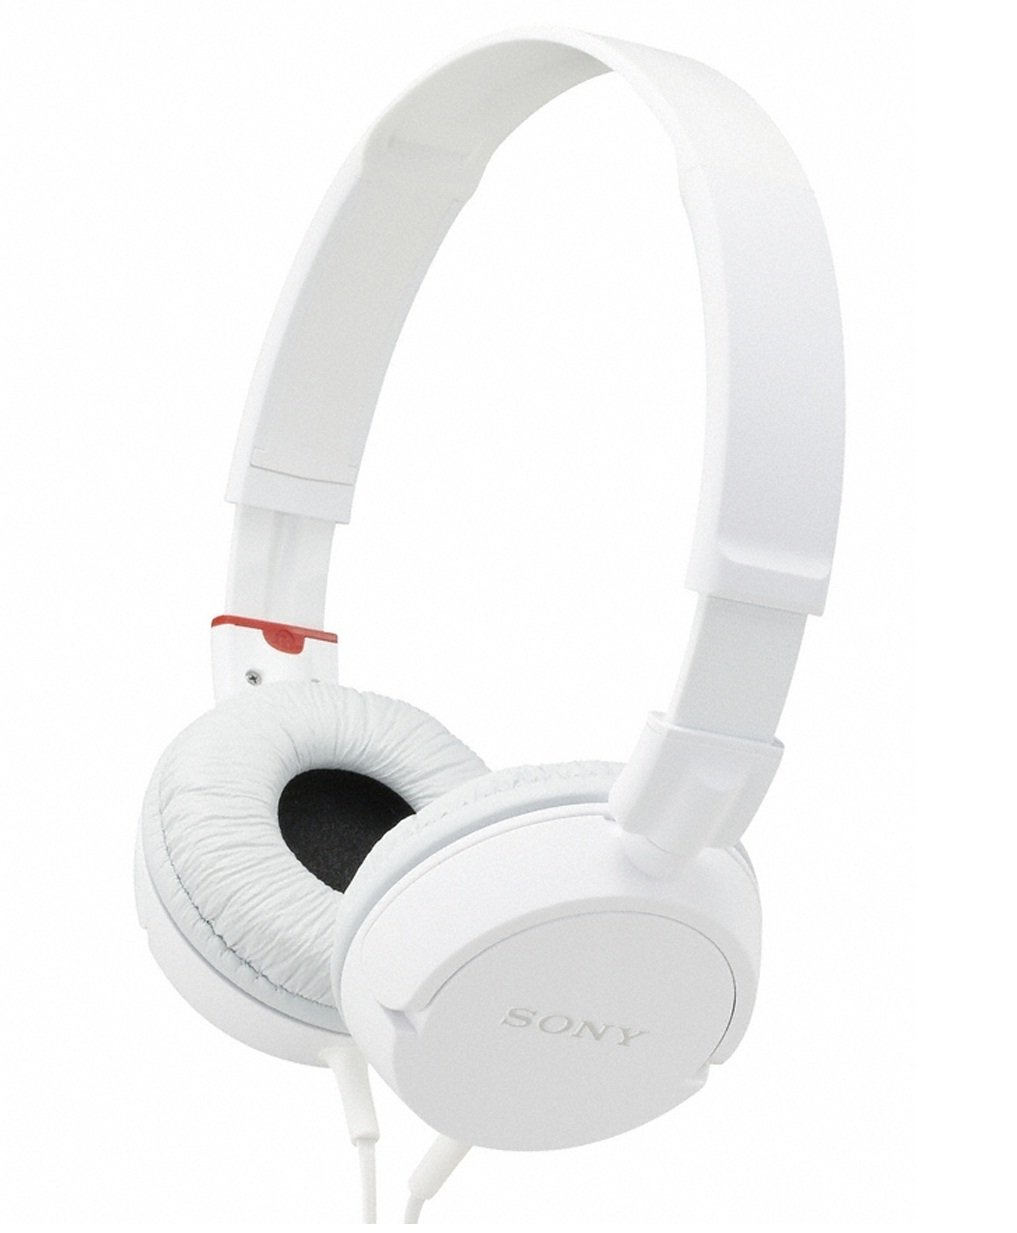 Sony Slim Lightweight Dynamic Studio Monitor Stereo Headphones with Pressure Relieving Earpads, Swivel Earcups, High Power Neodymium Magnets, 30mm Deep Bass Drivers, Multi-Layer Dome Diaphragms and a Noise-Reducing Closed Supra-Aural Design - White - Compatible with all Portable and Home Audio Players